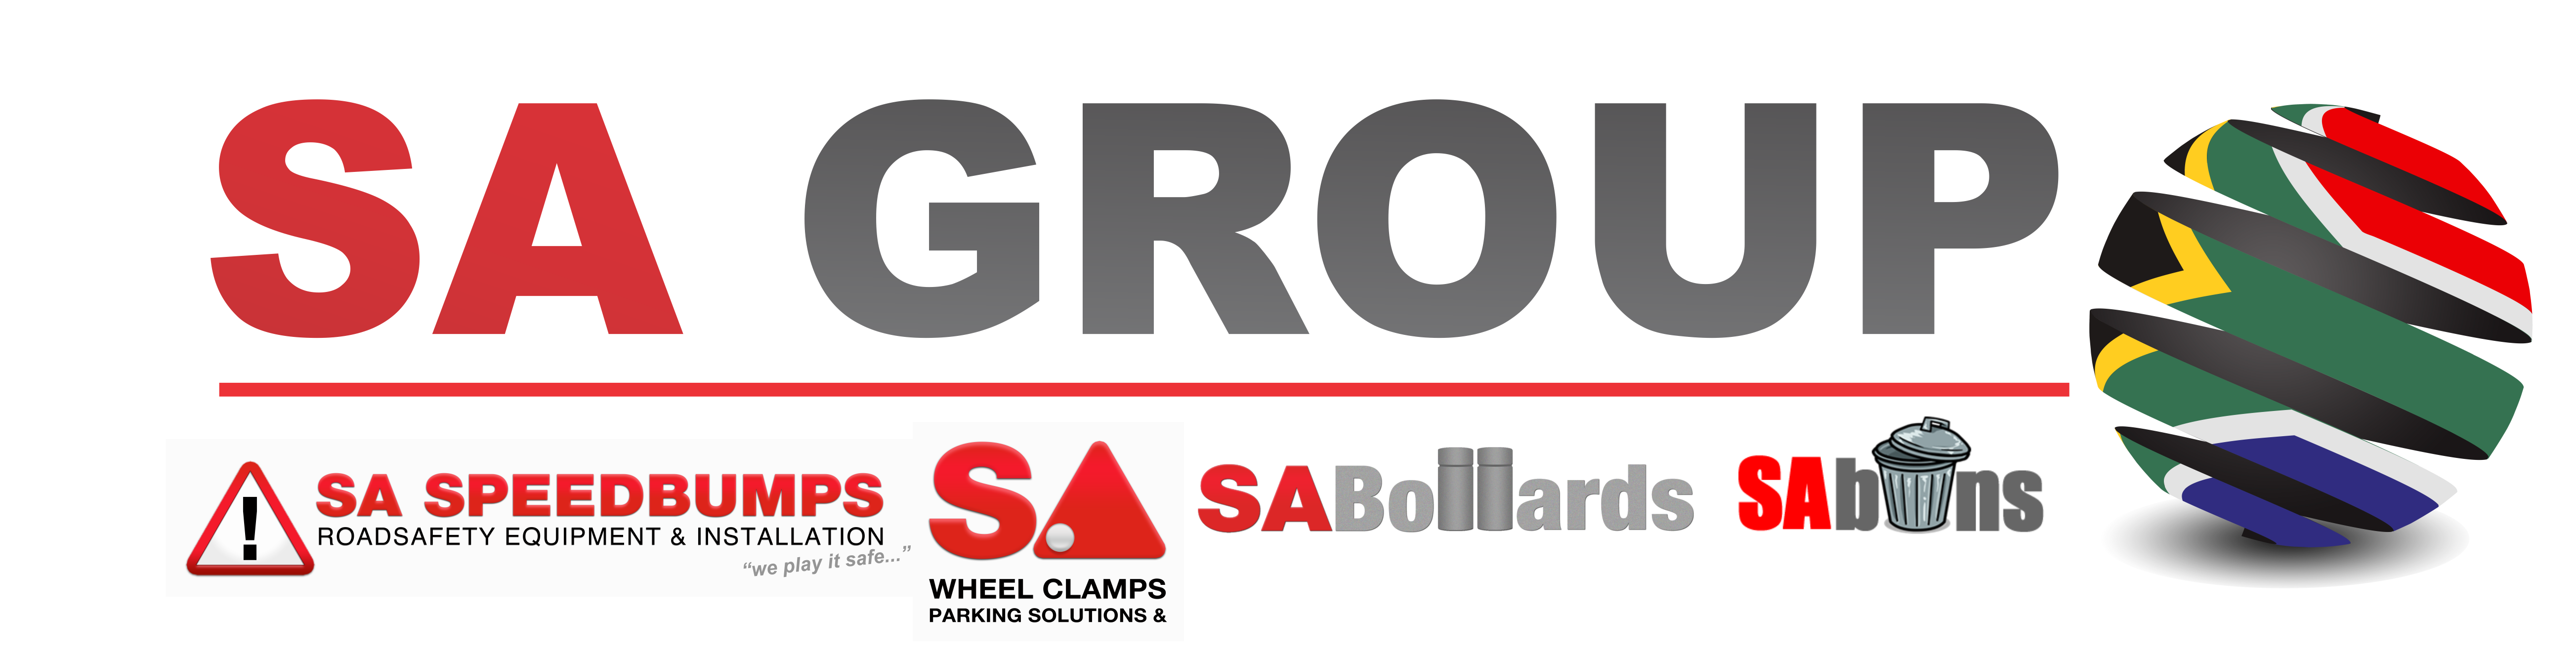 The SA Group